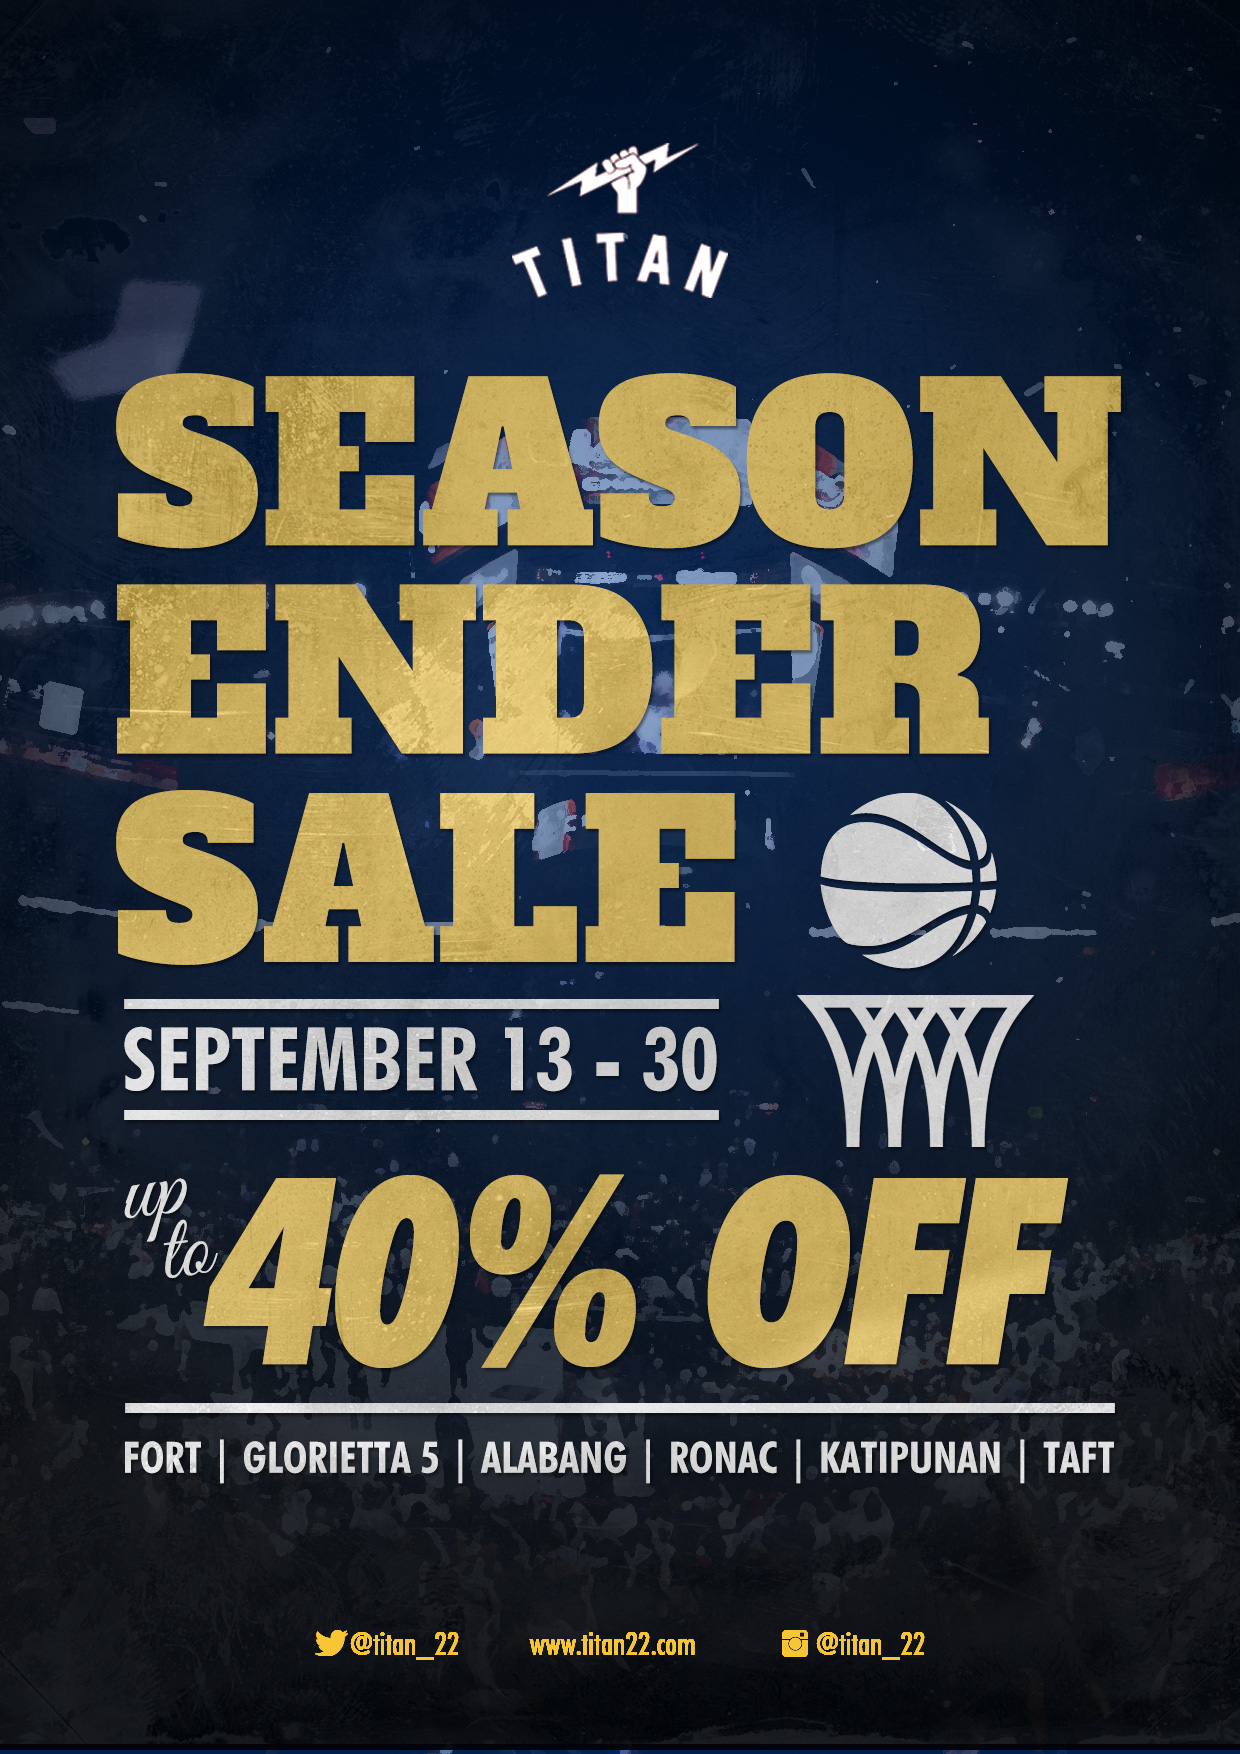 Titan Season Ender Sale September 2014